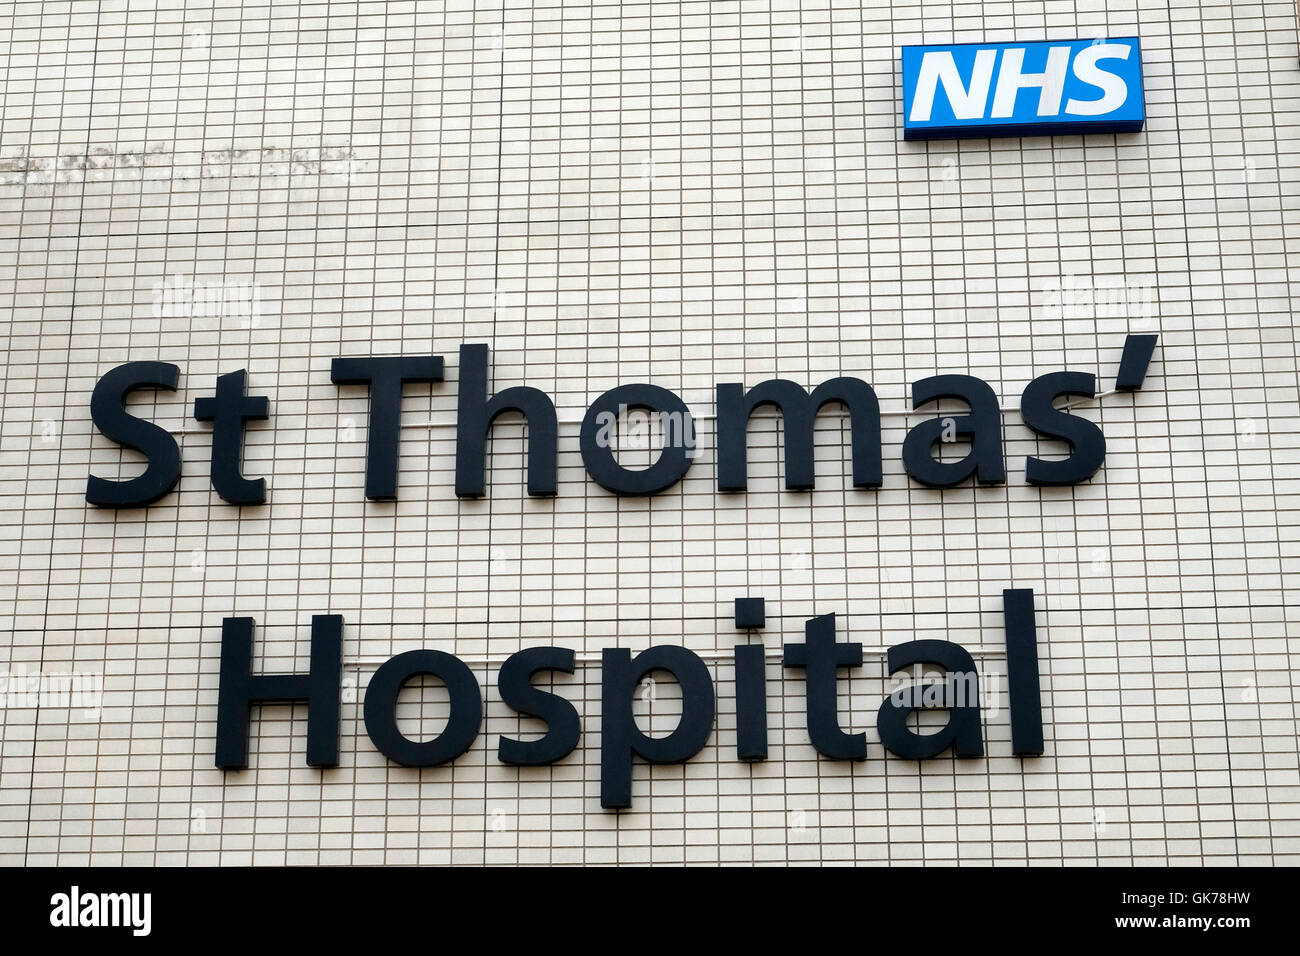 St Thomas' hospital sign - Stock Image